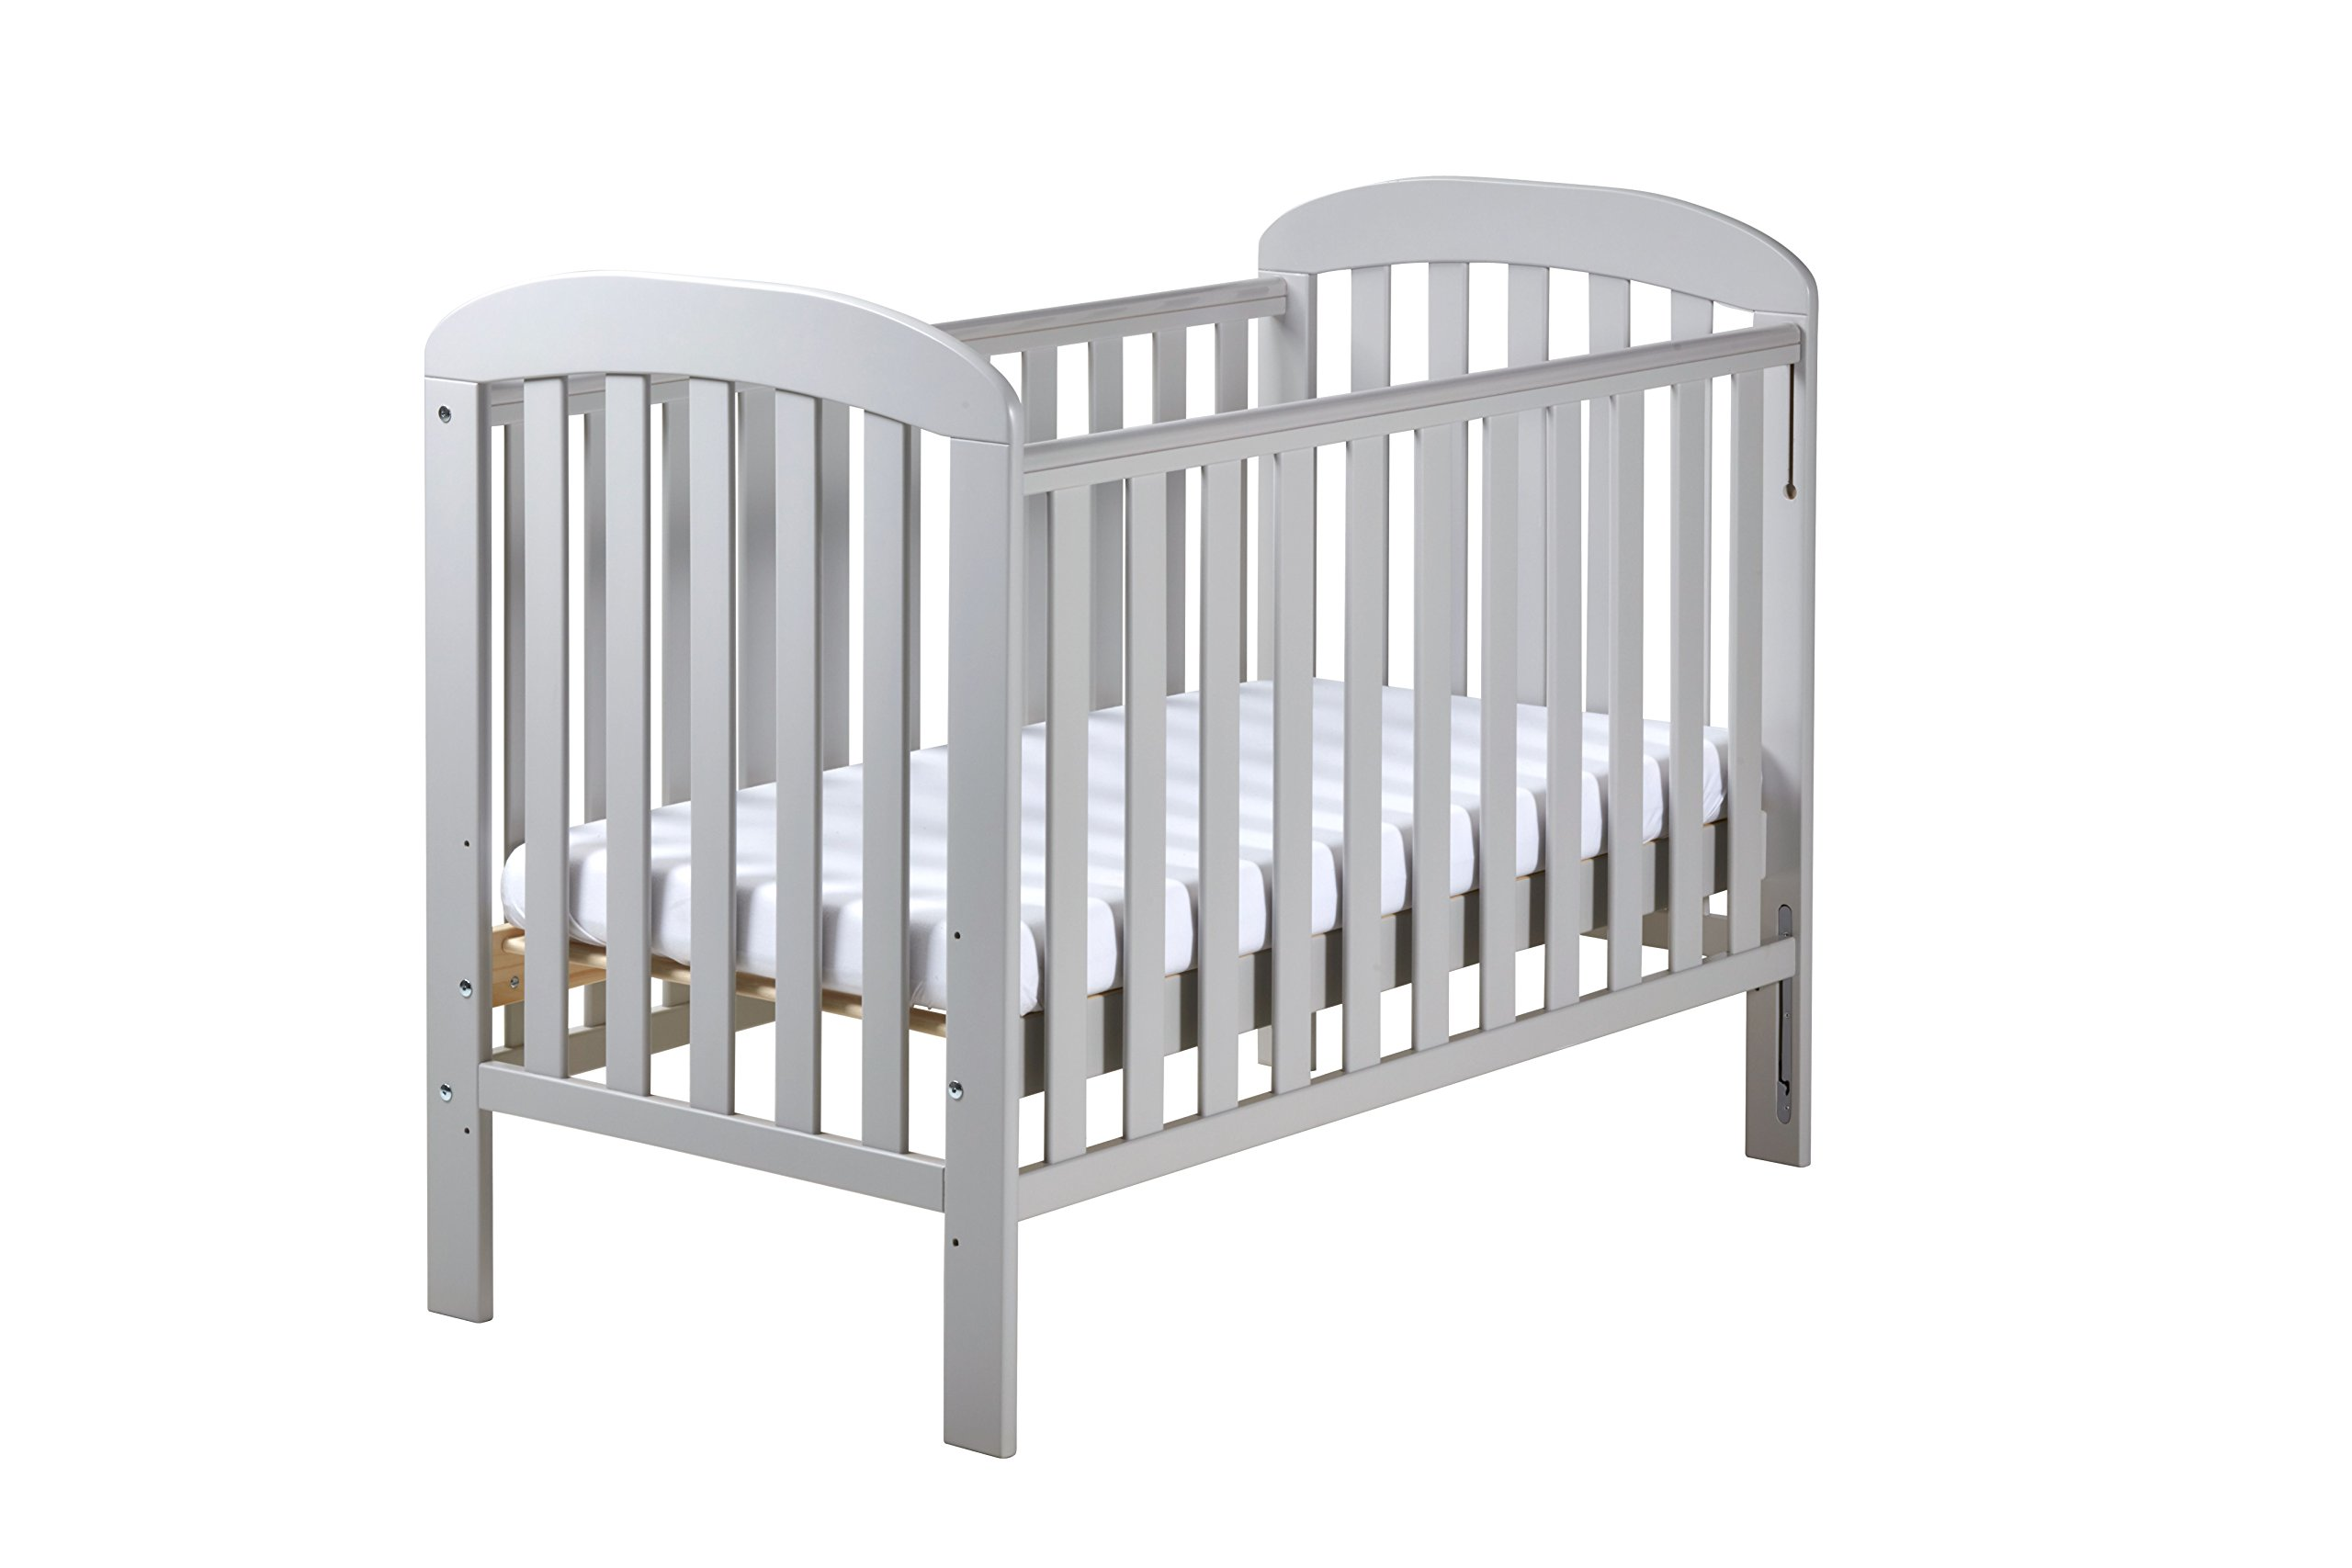 East Coast Nursery Anna Dropside Cot, Grey East Coast Nursery Ltd Single handed dropside 2 protective teething rails 3 base heights 1